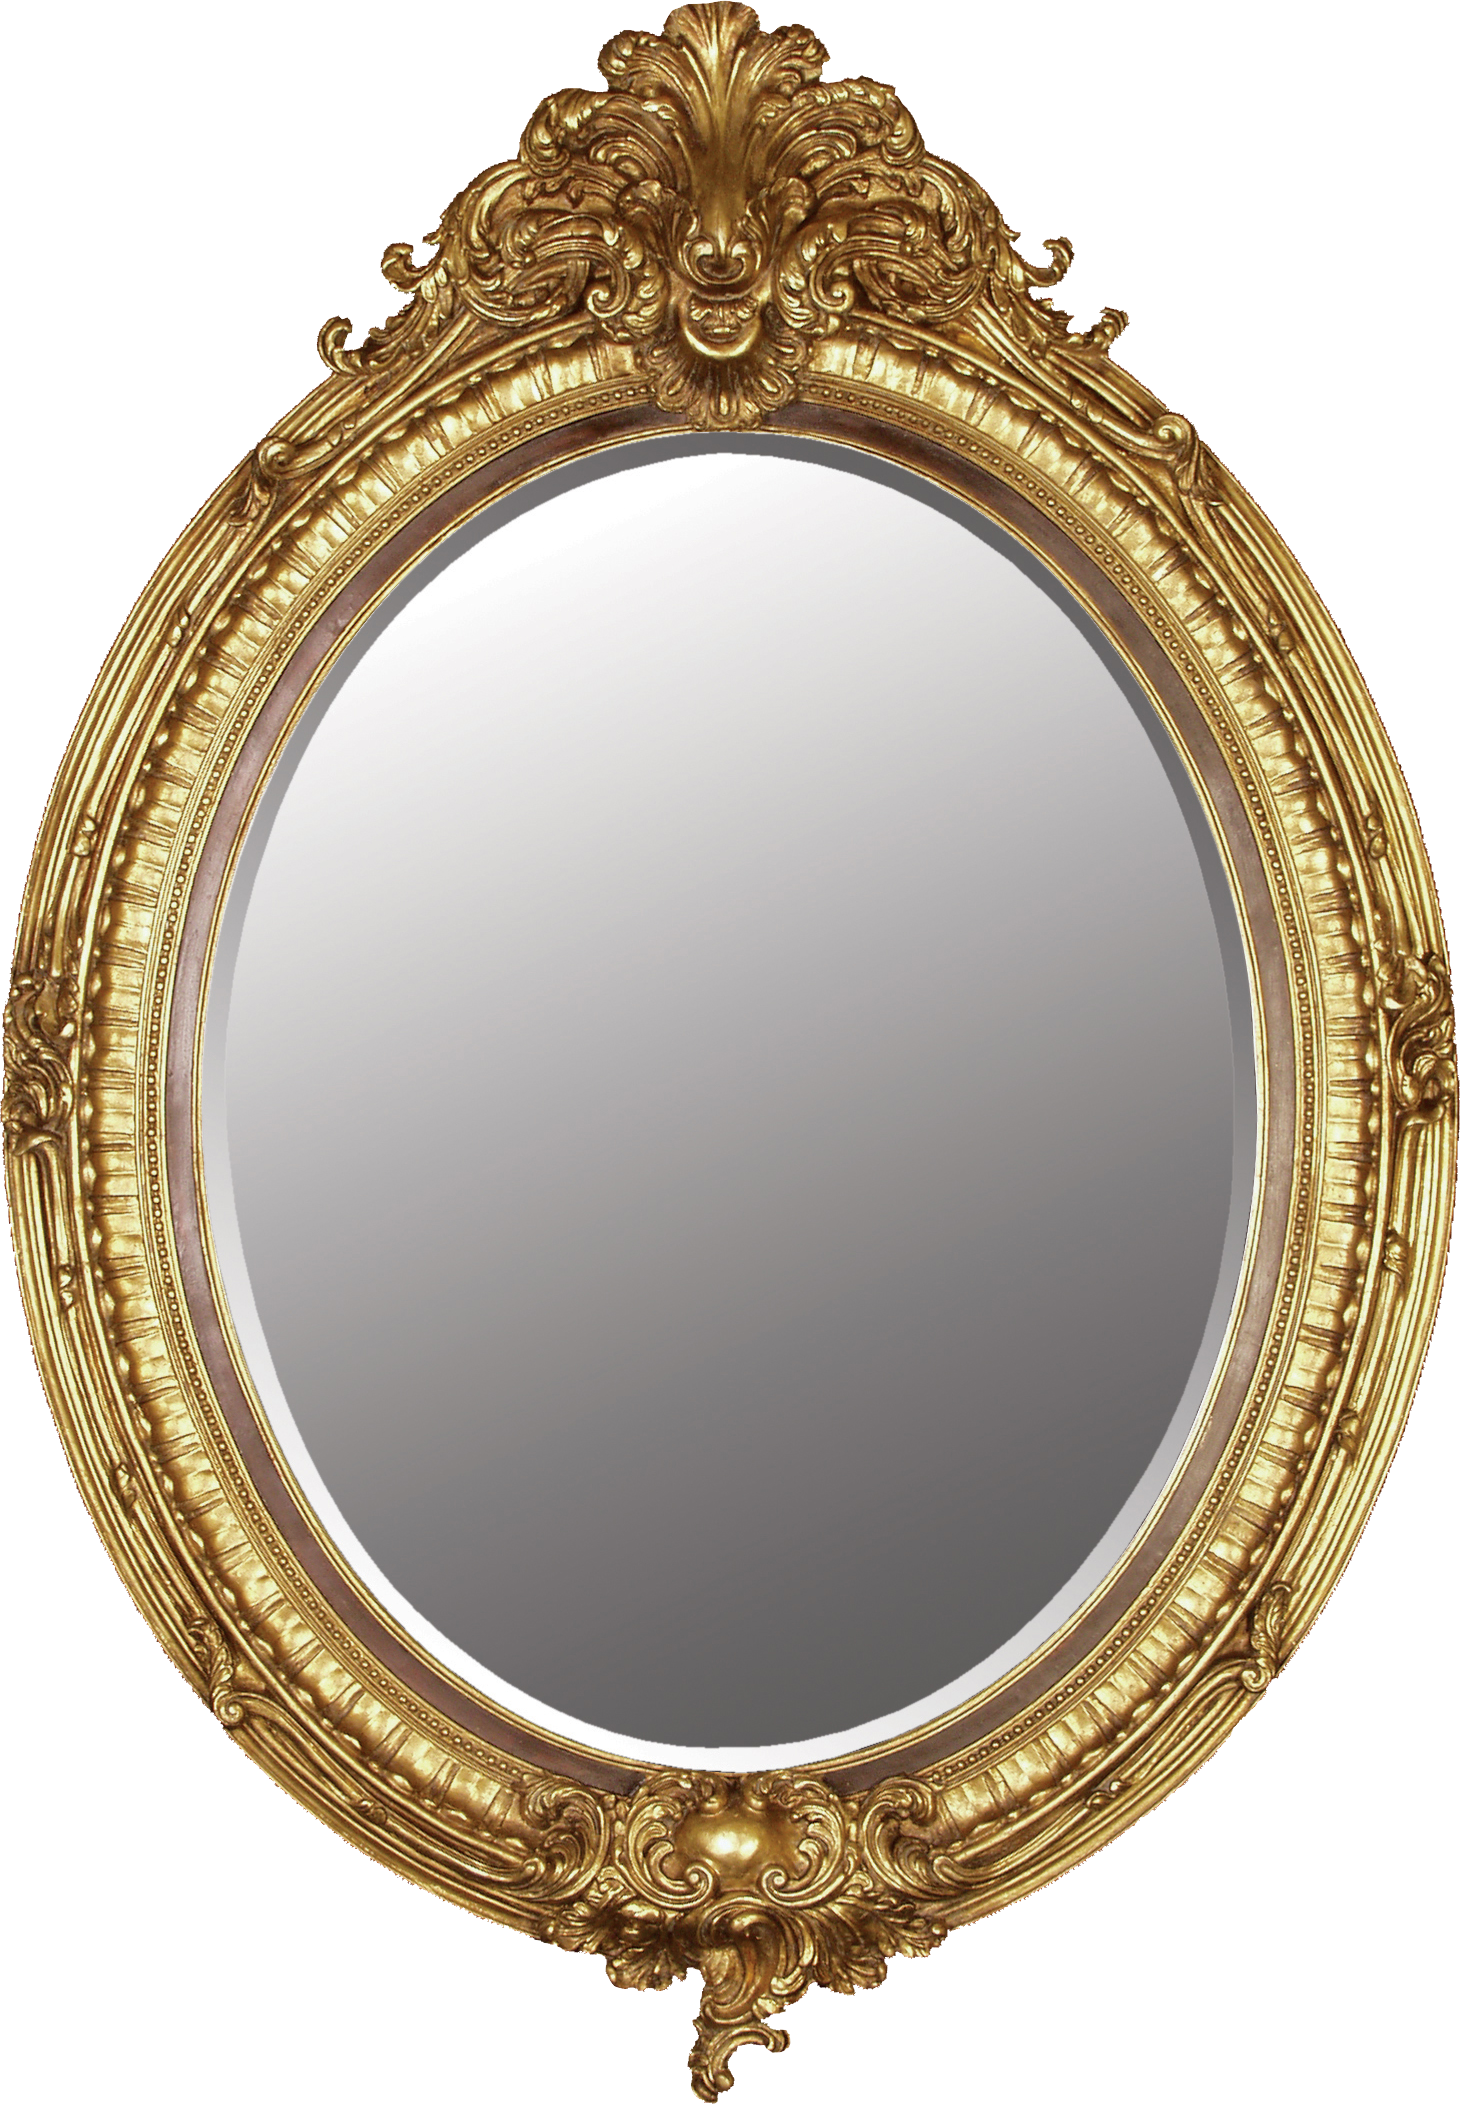 Mirror PNG - Mirror PNG